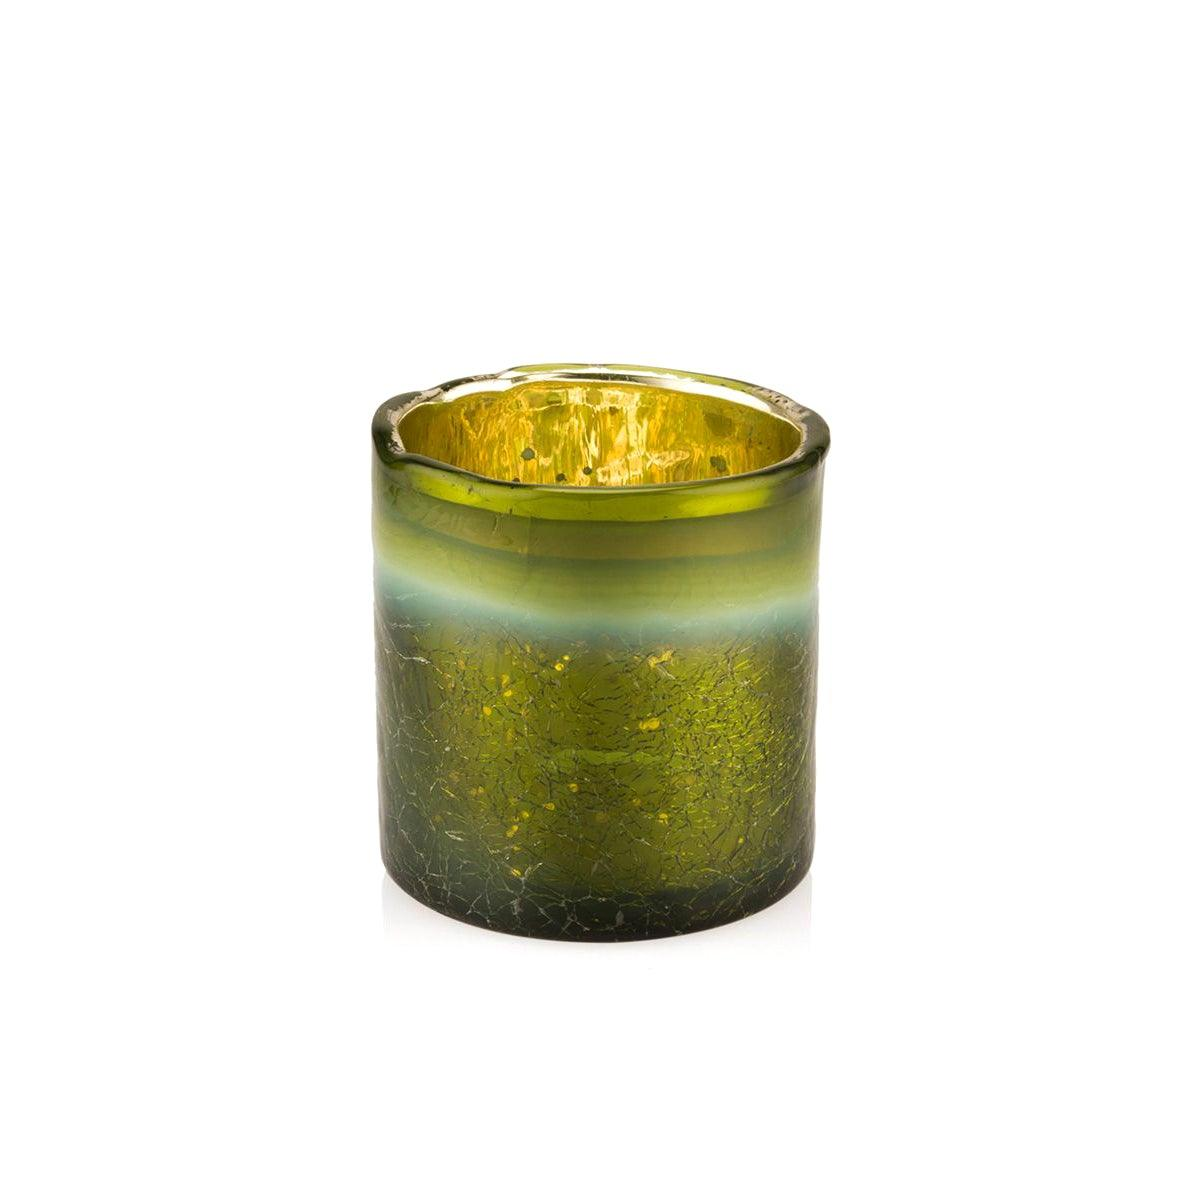 Imani Moss Green Candle Holder